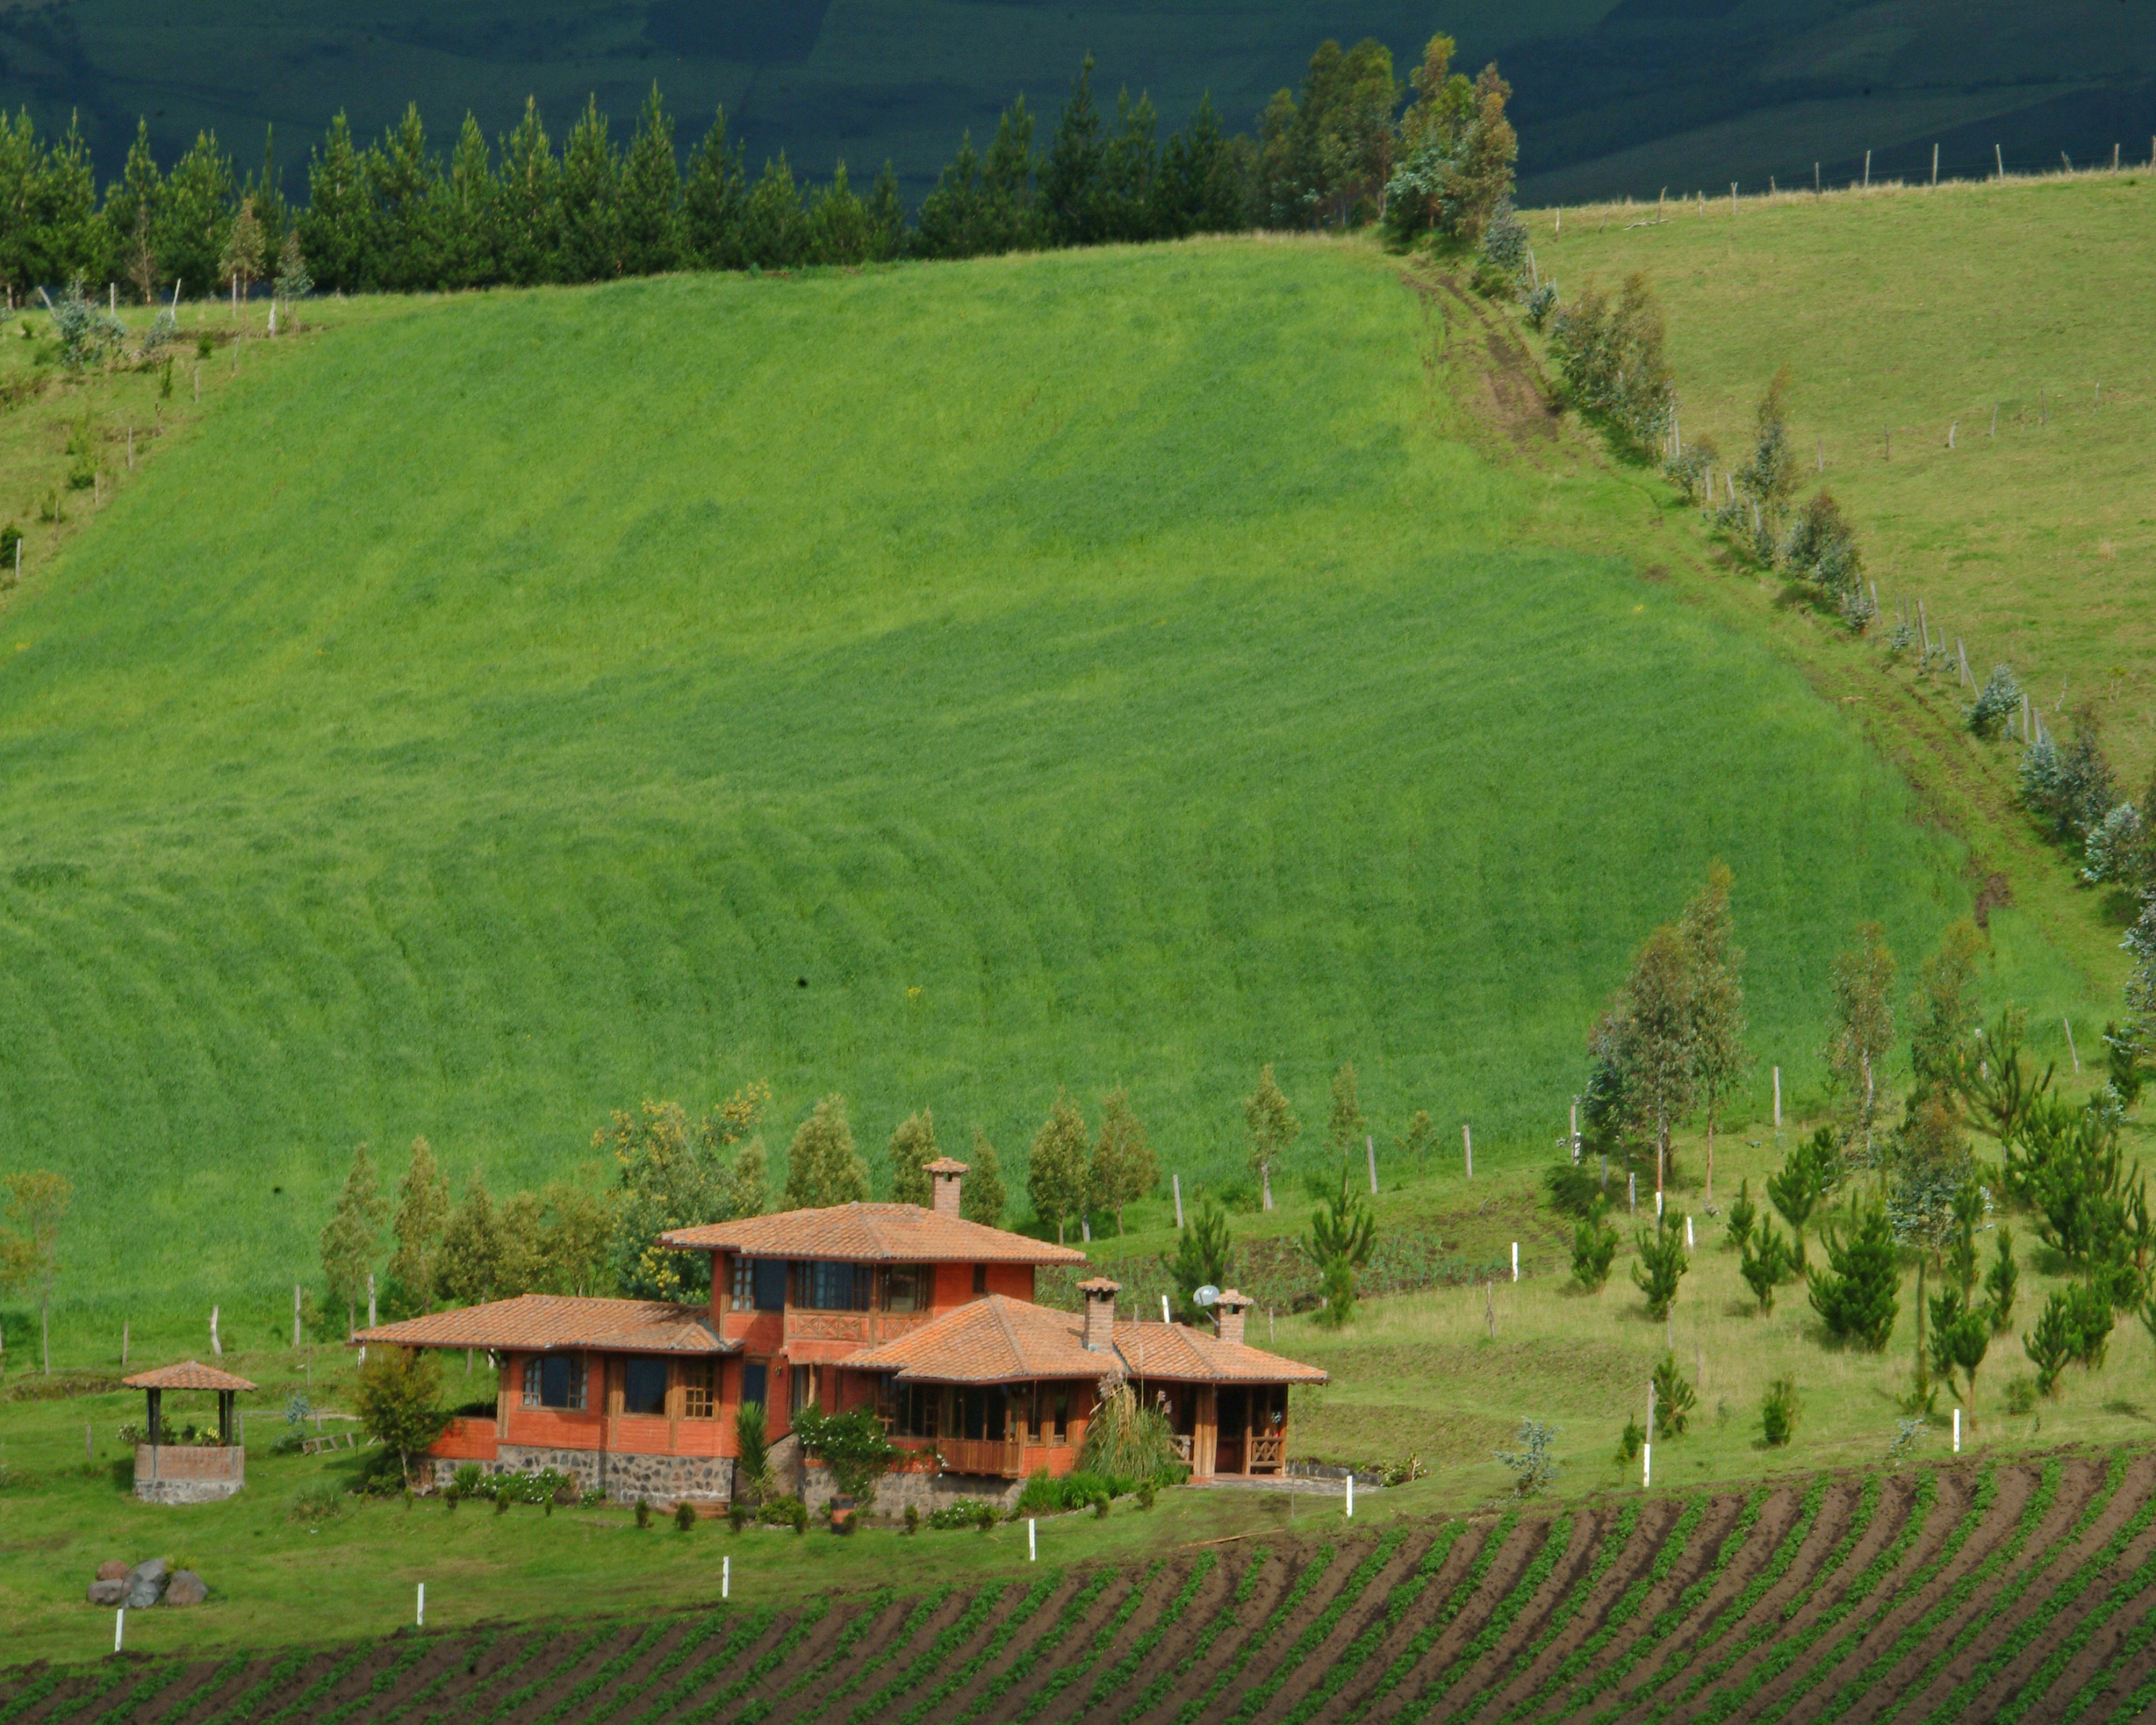 FARM IN ANDES